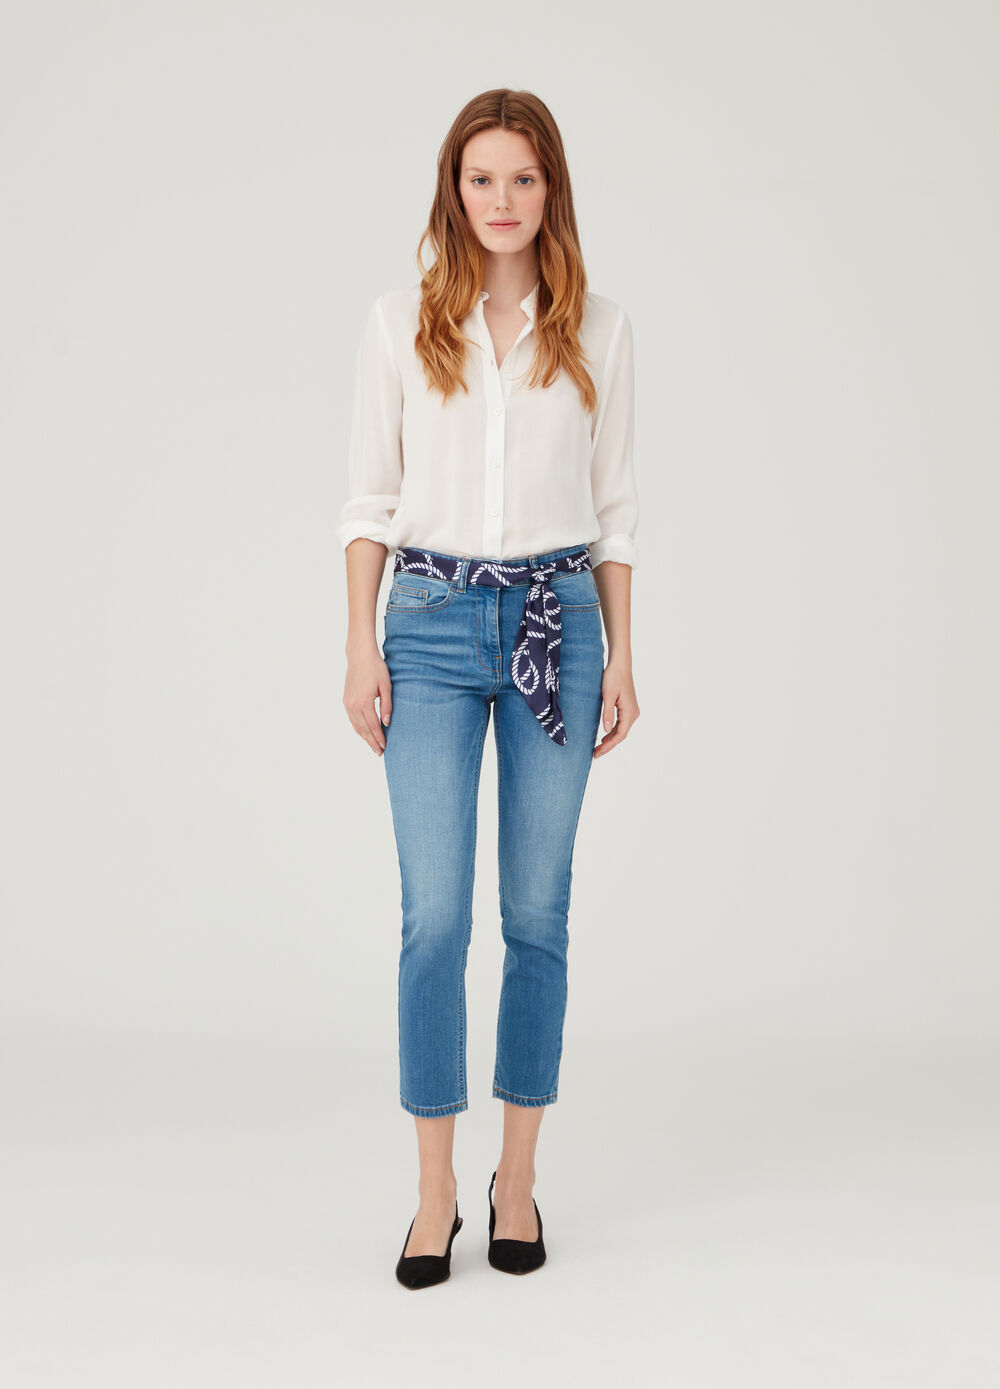 Ankle-fit jeans with sash at the waist